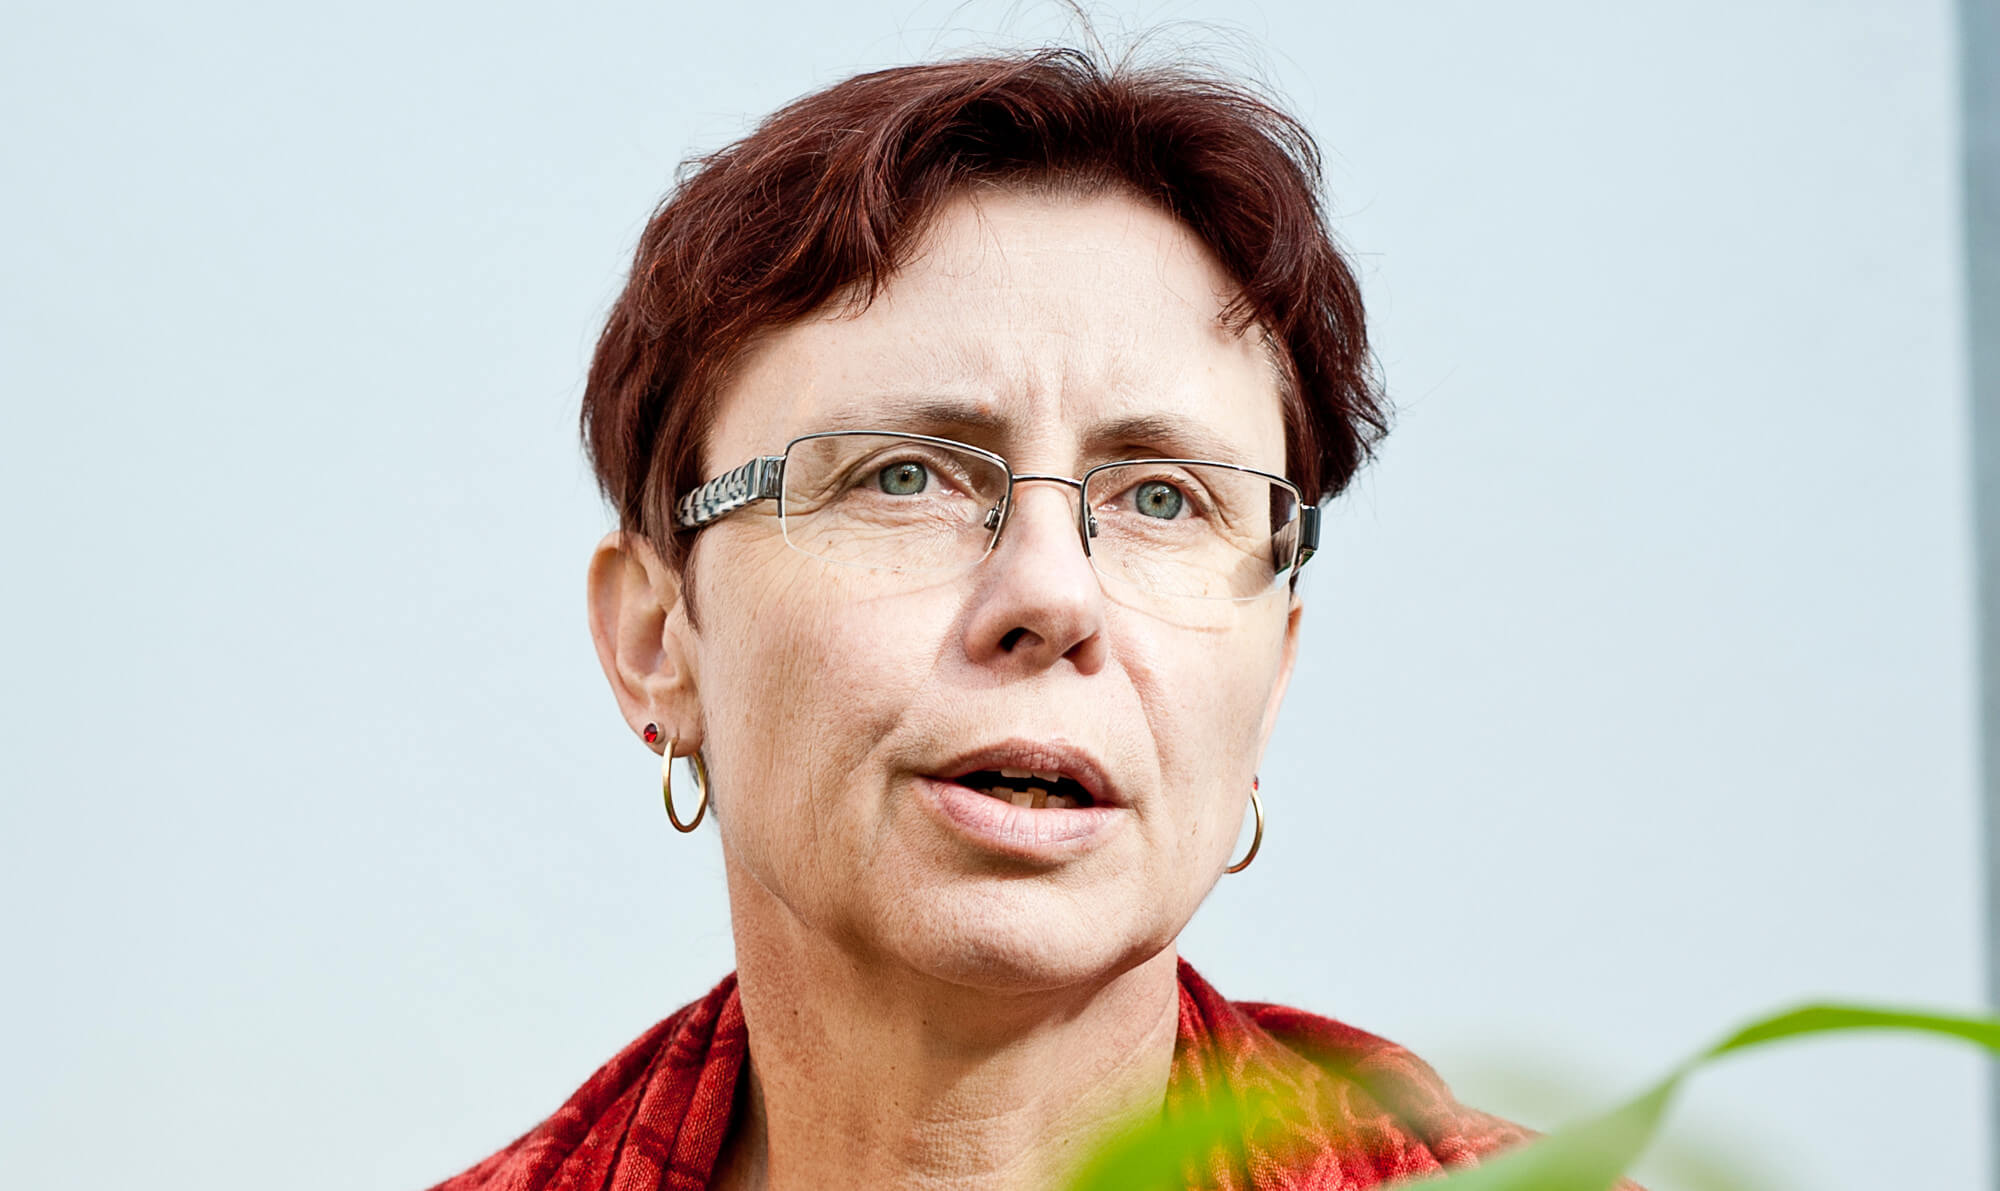 Angelika Hilbeck: Ecologist claims agri-corporations 'stalk' her for claiming GMOs are dangerous